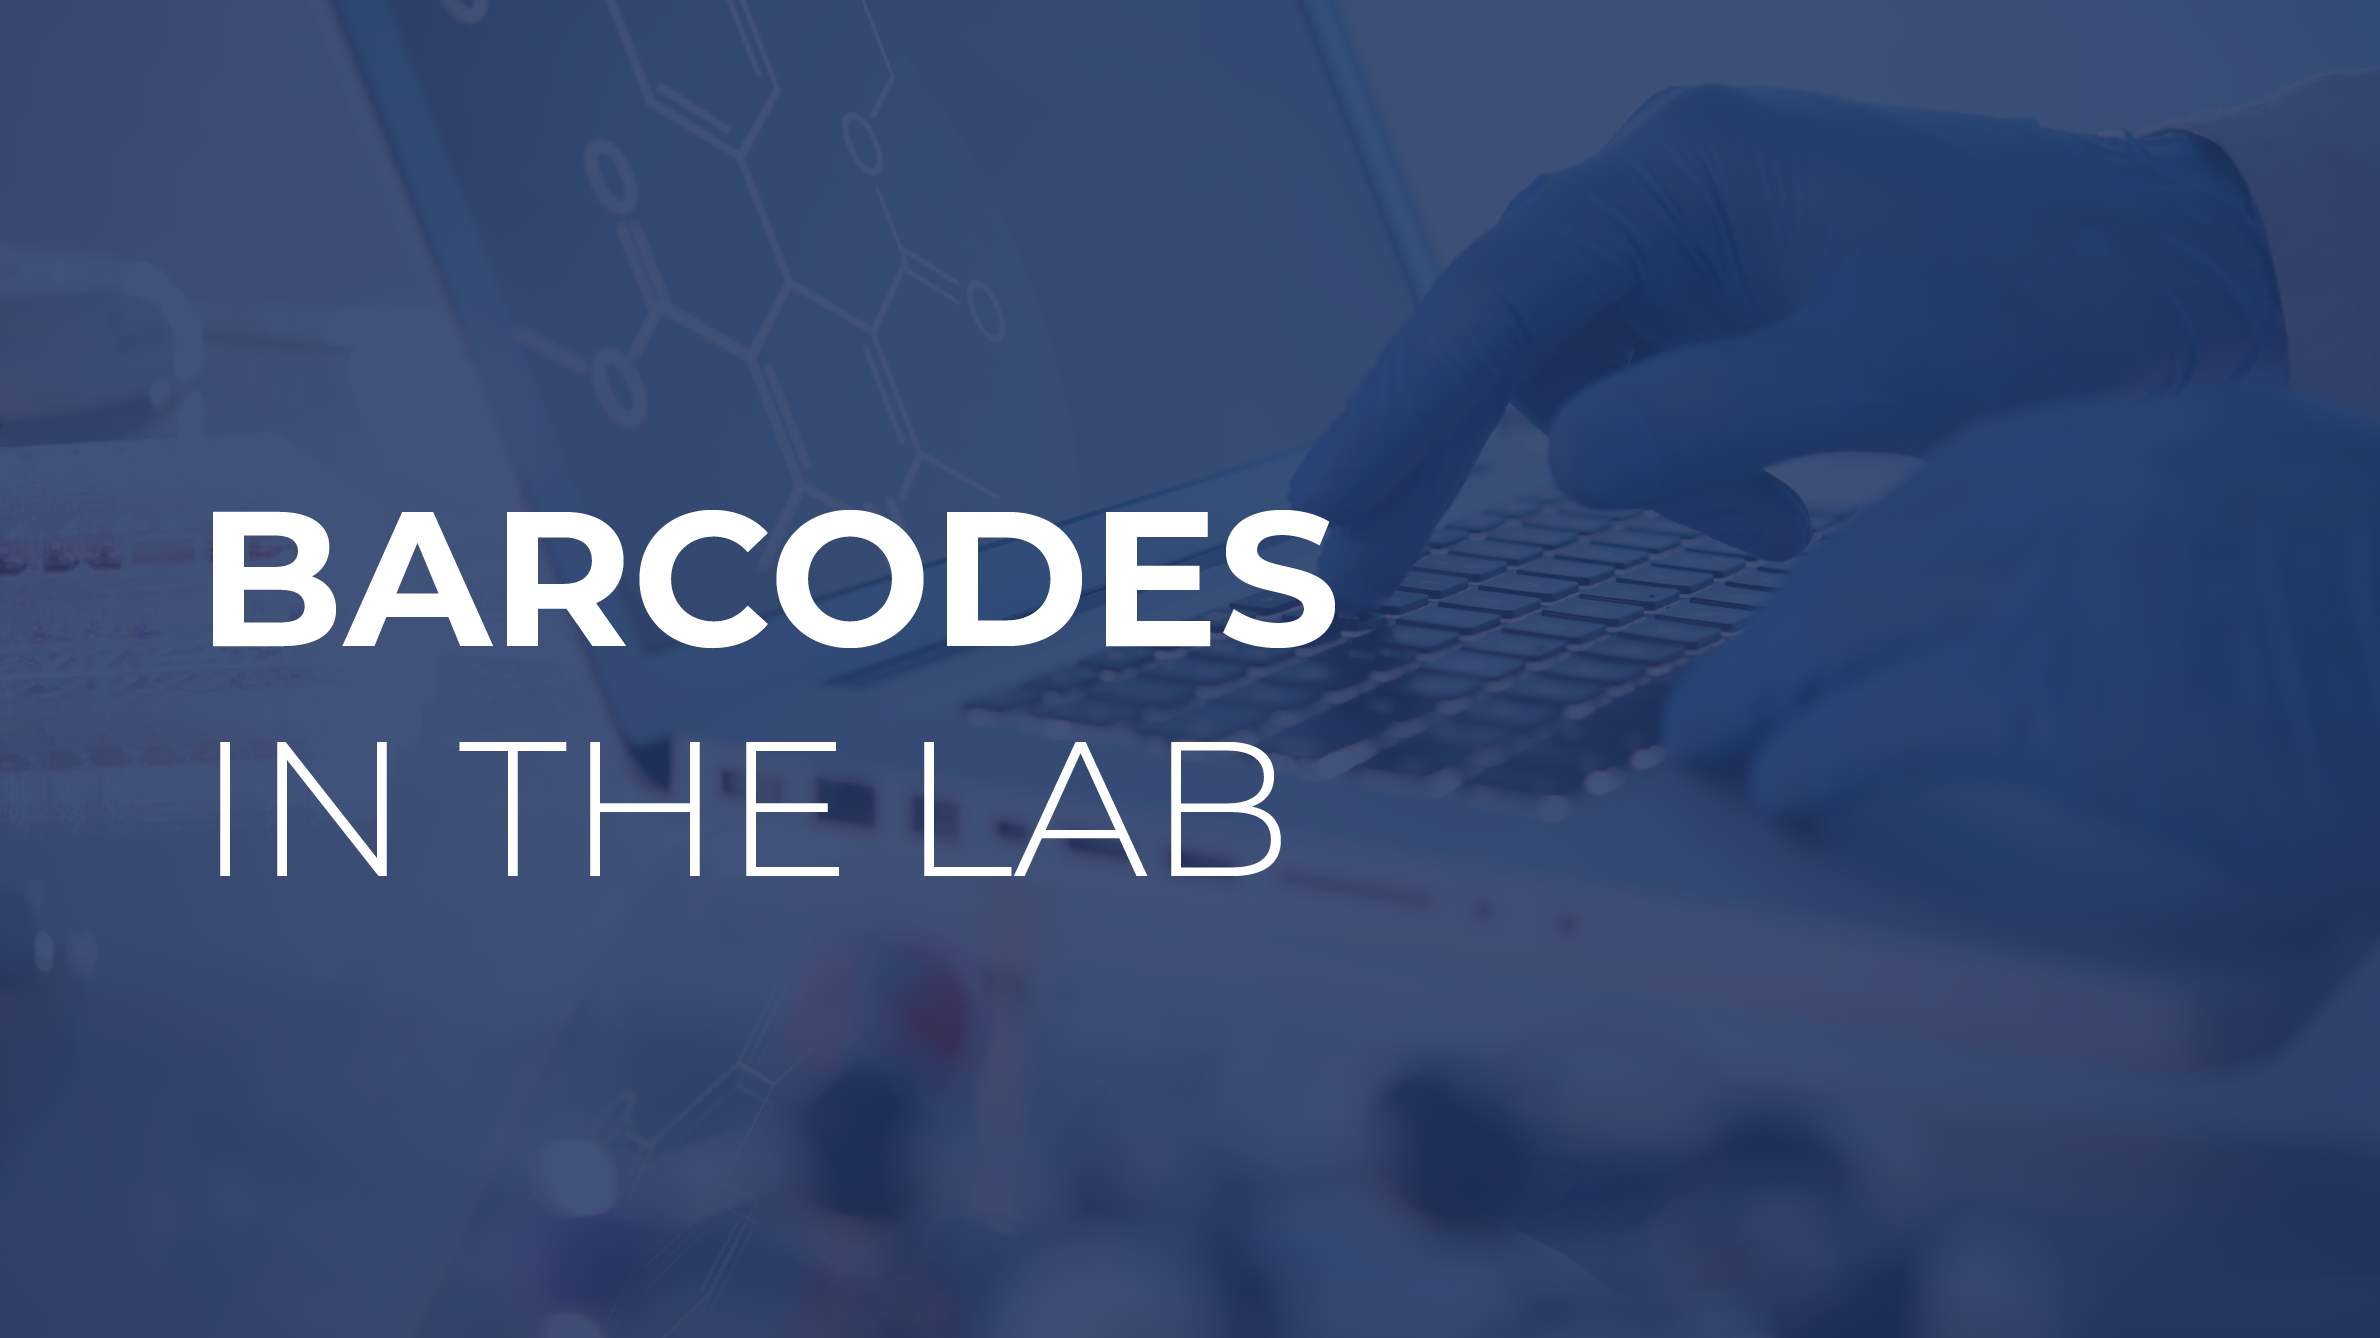 Barcodes in the Lab